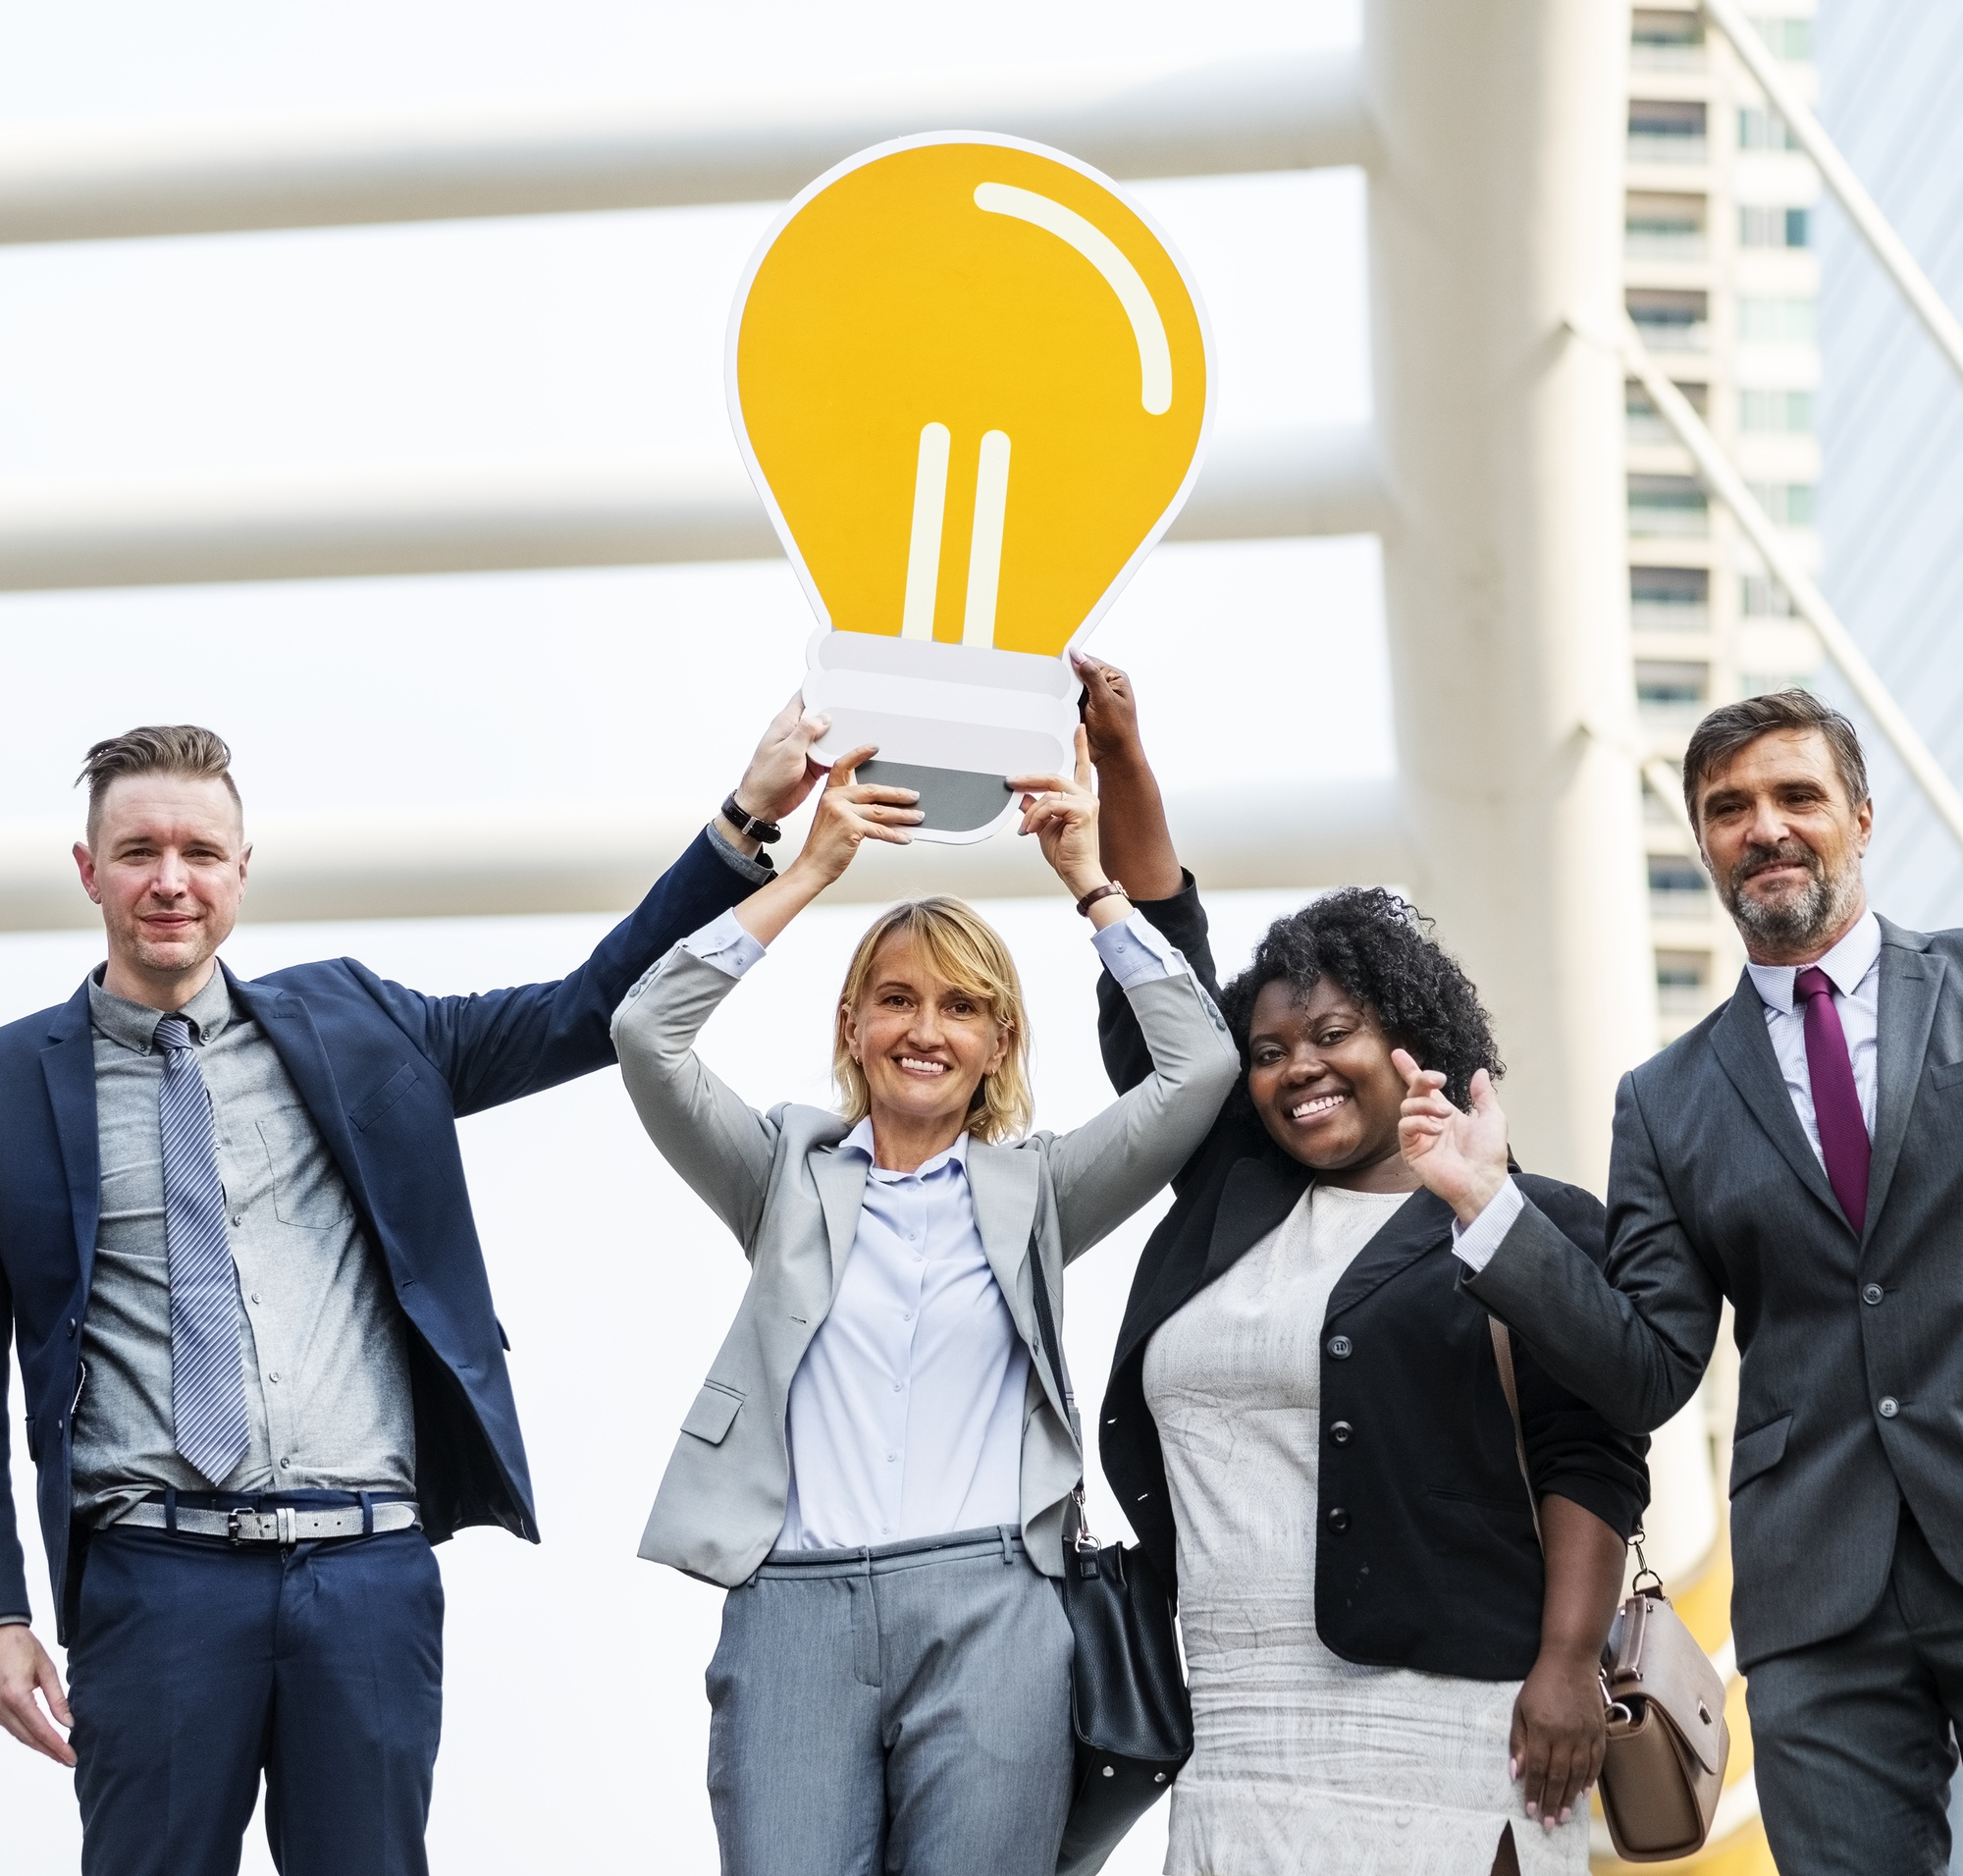 Successful business people with ideas